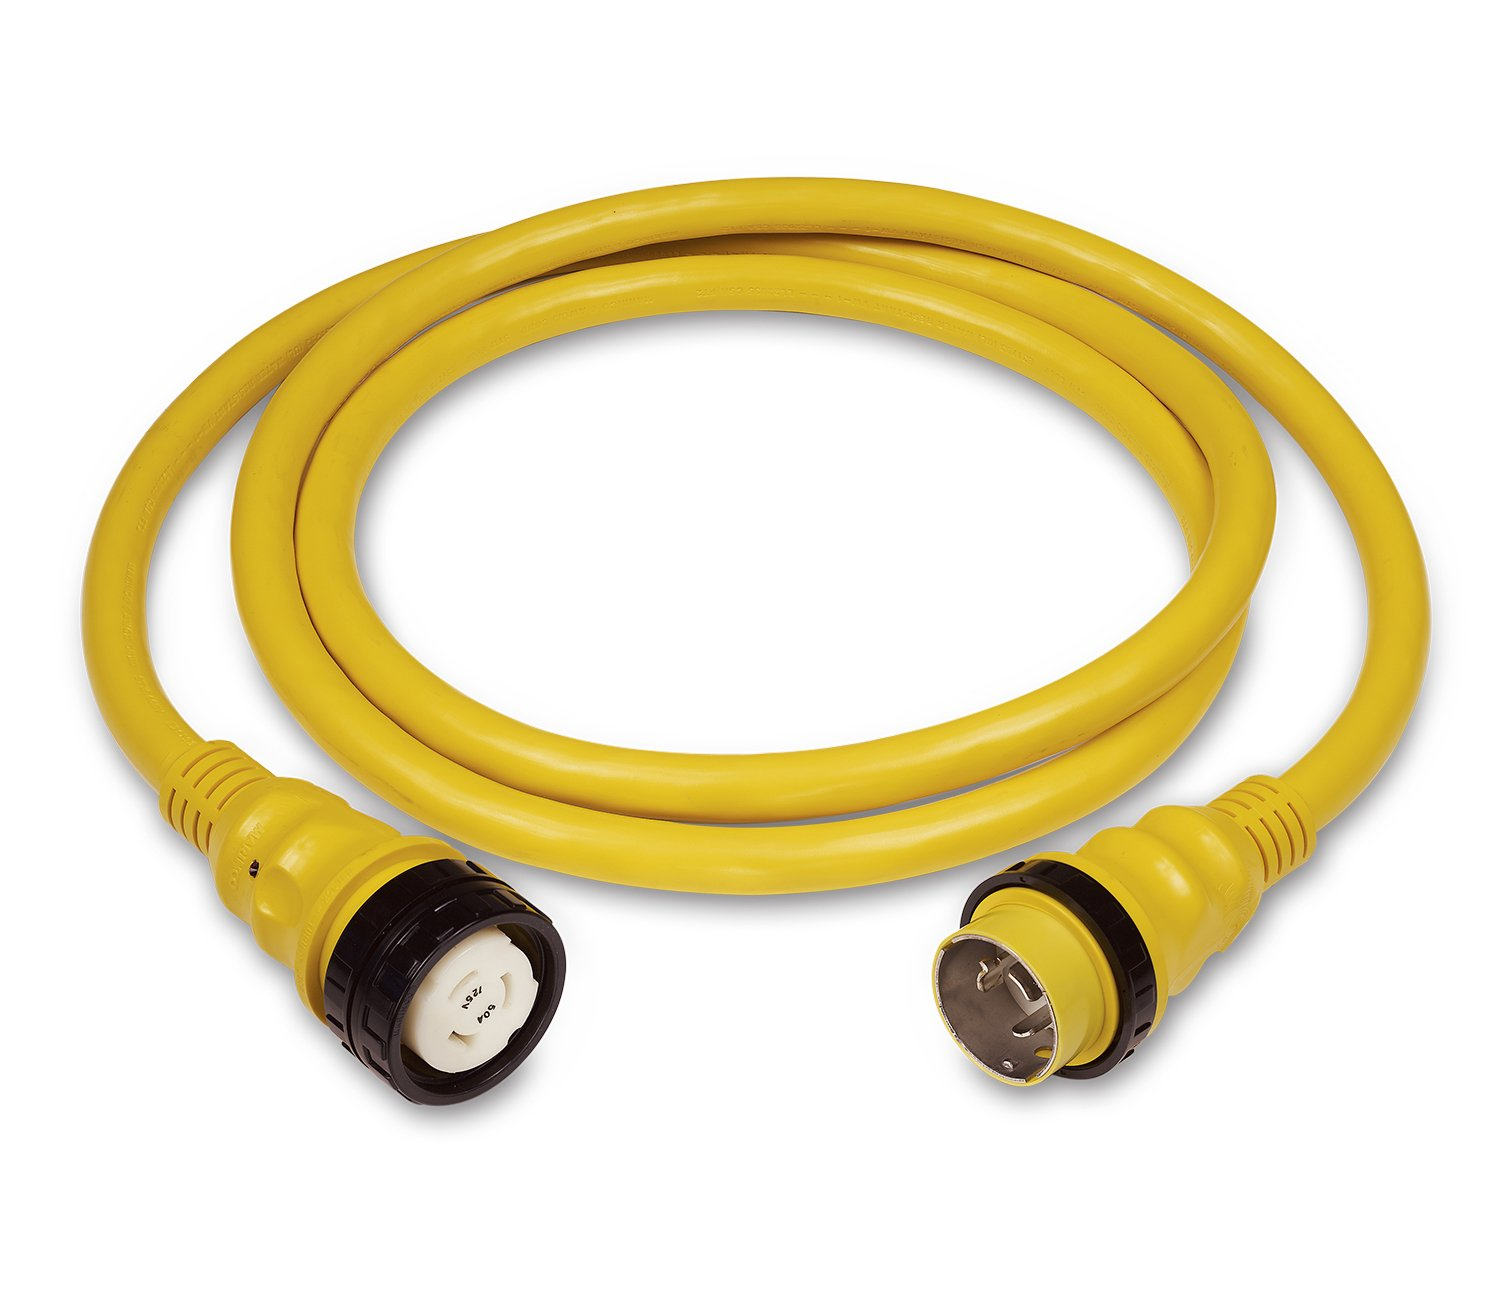 50 Amp 125 Volt Power Cord Plus Cordset (3-Wire) - 50 ft Yellow in Box